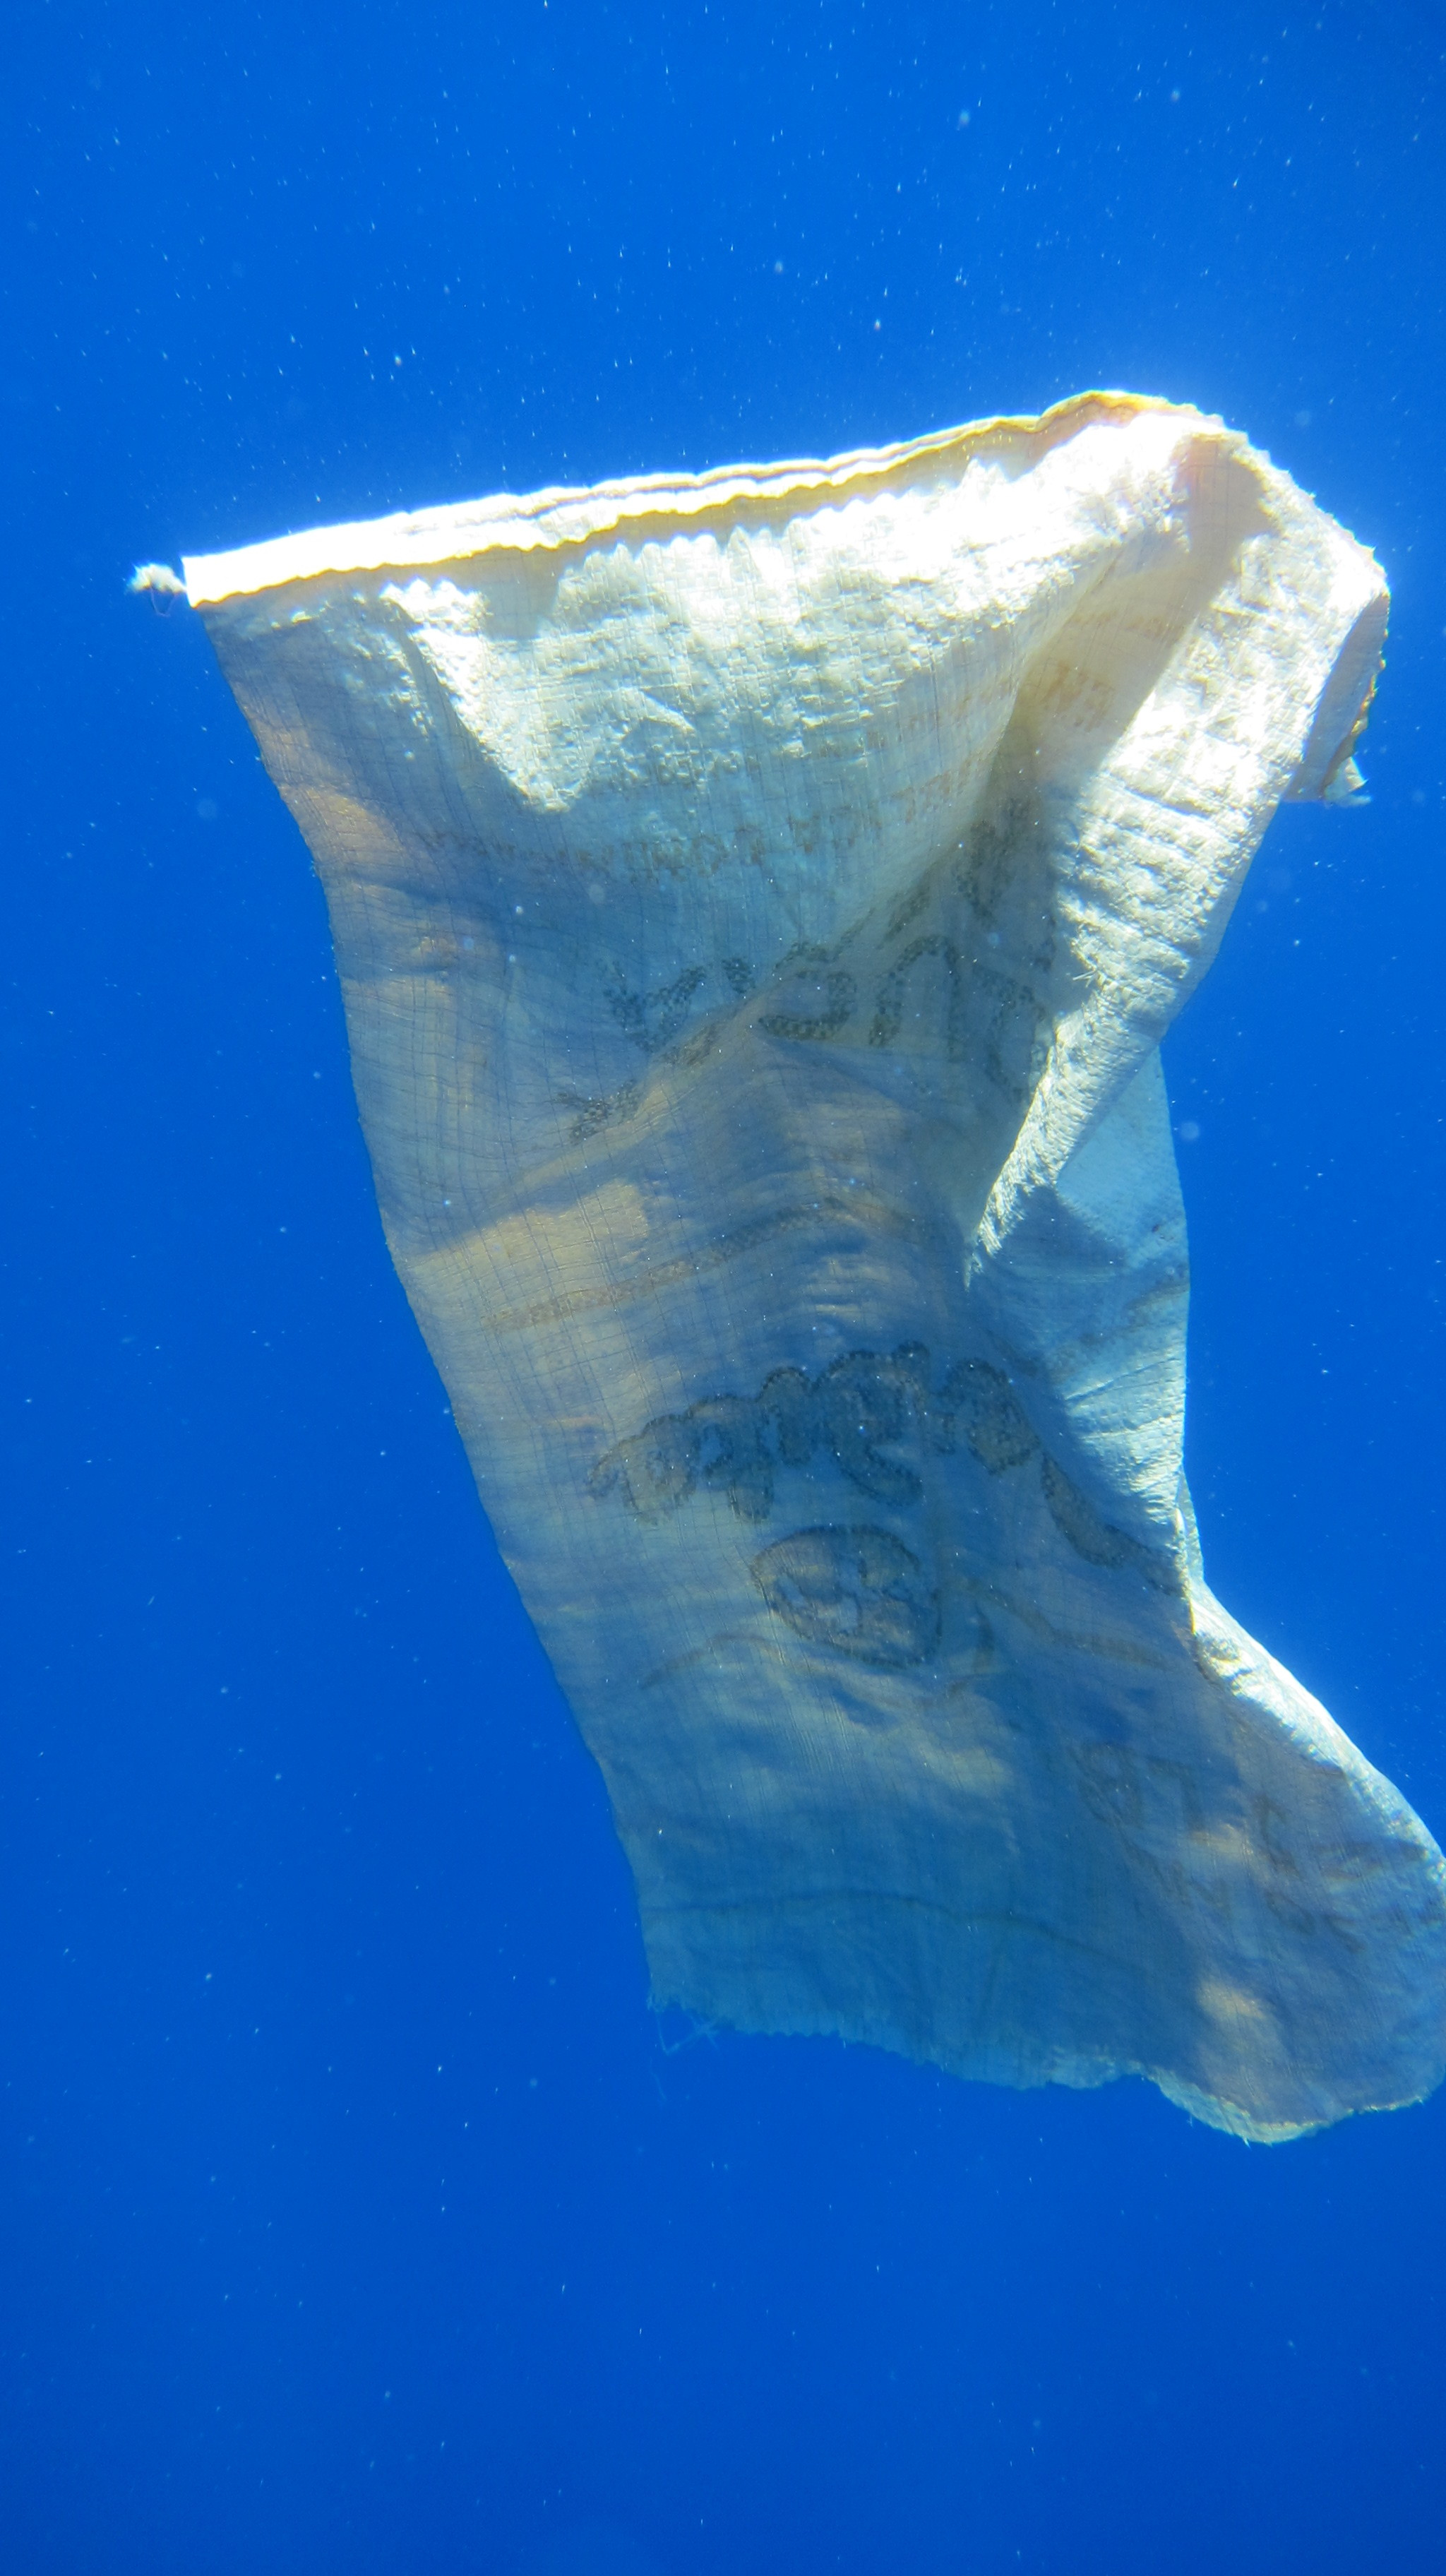 Fig. 2: A sugar bag originating from the Dominican Republic. Within a few years this bag will break up into tiny microplastics, easily available for accidental consumption by marine fishes.